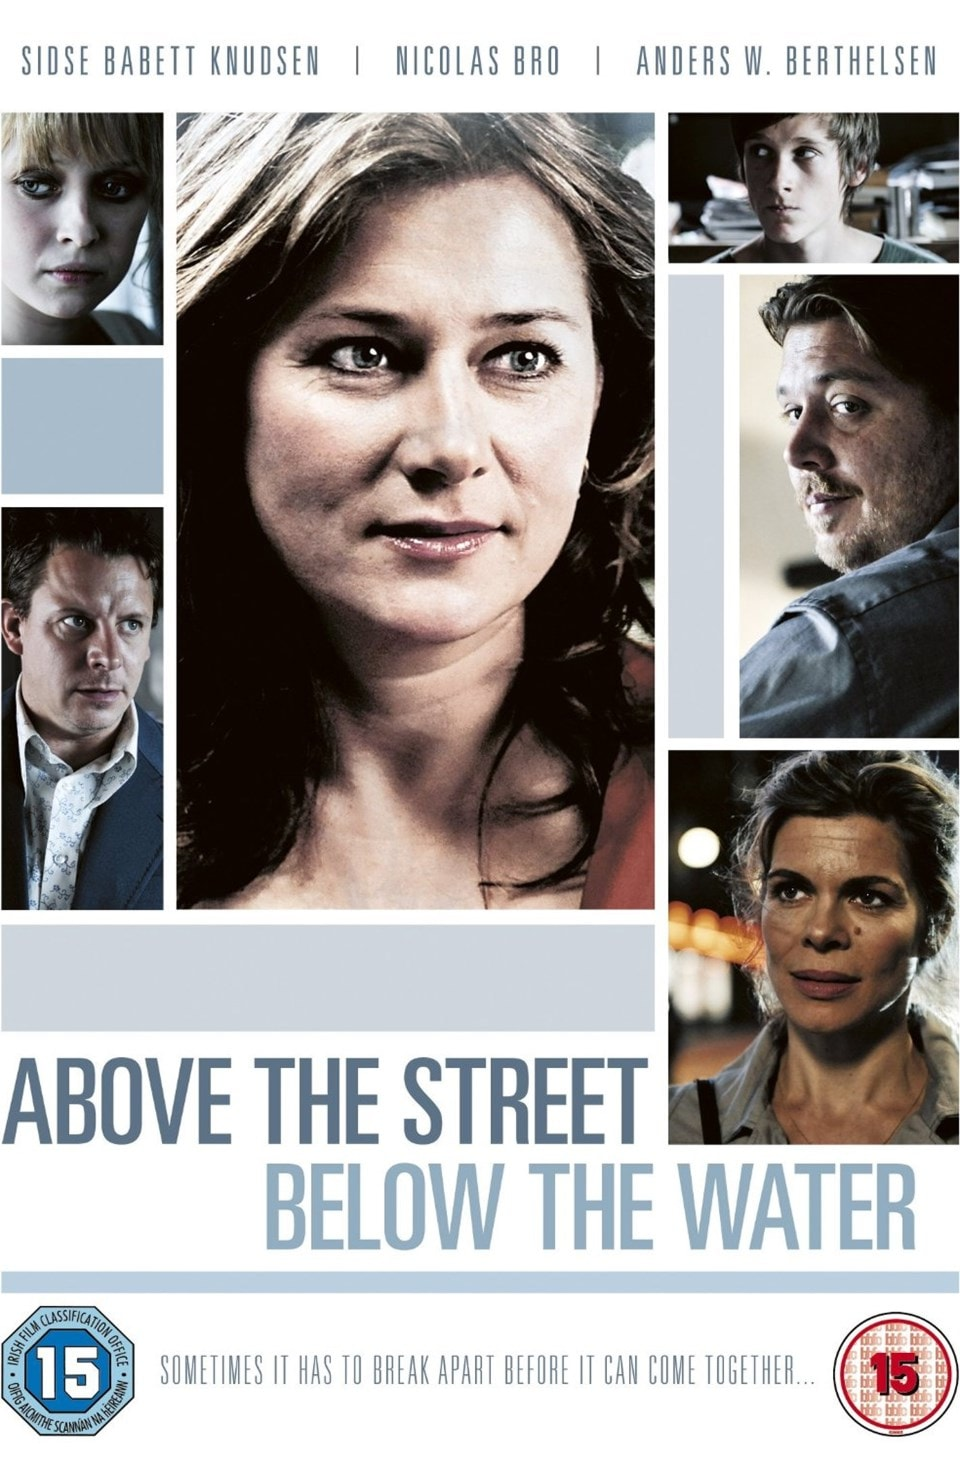 Above the Street, Below the Water - 1